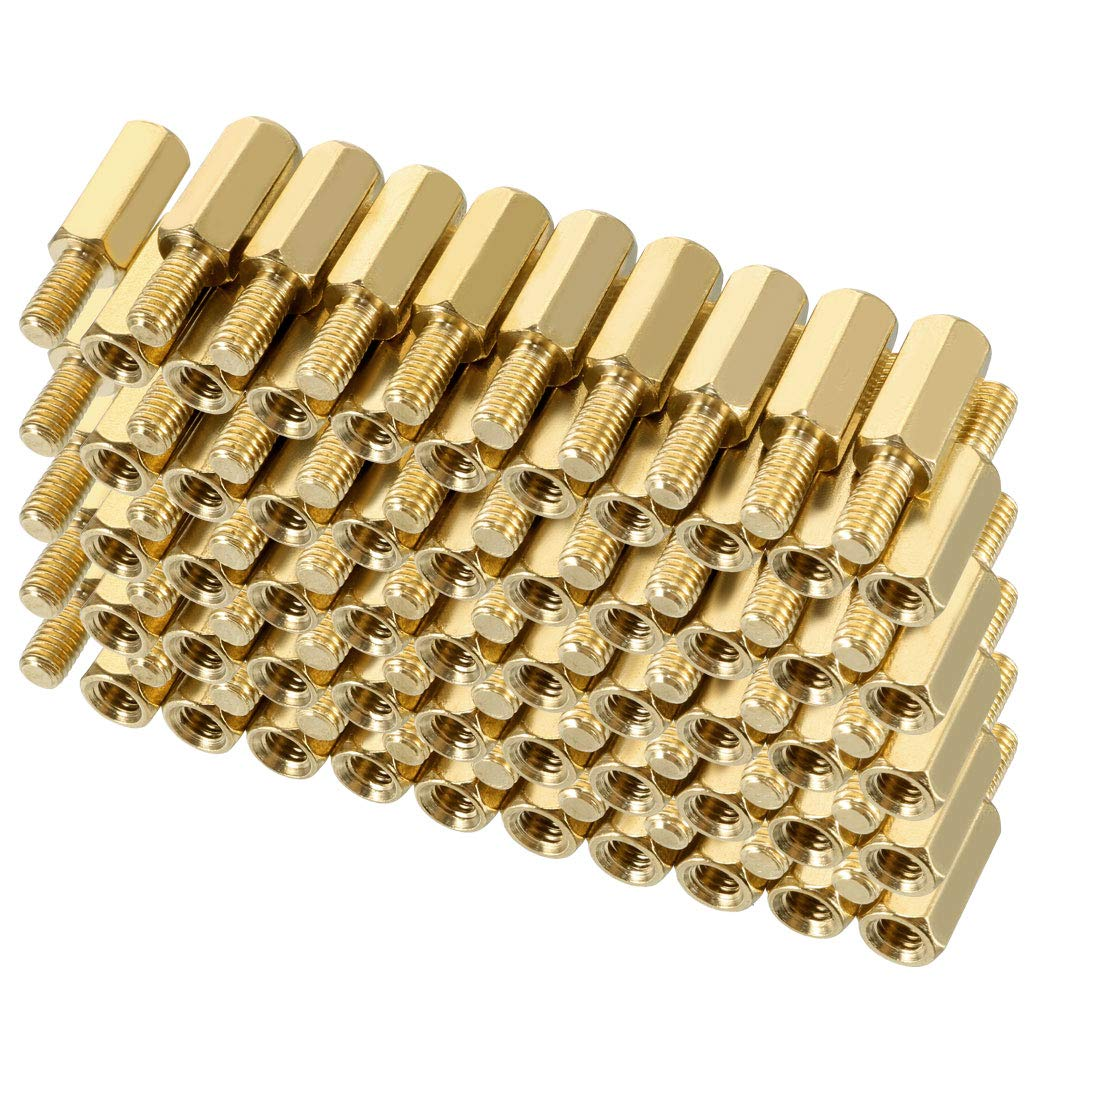 uxcell 20pcs M3 20+6mm Female Male Thread Brass Hex Standoff Spacer Screws PCB Pillar a18072700ux0355